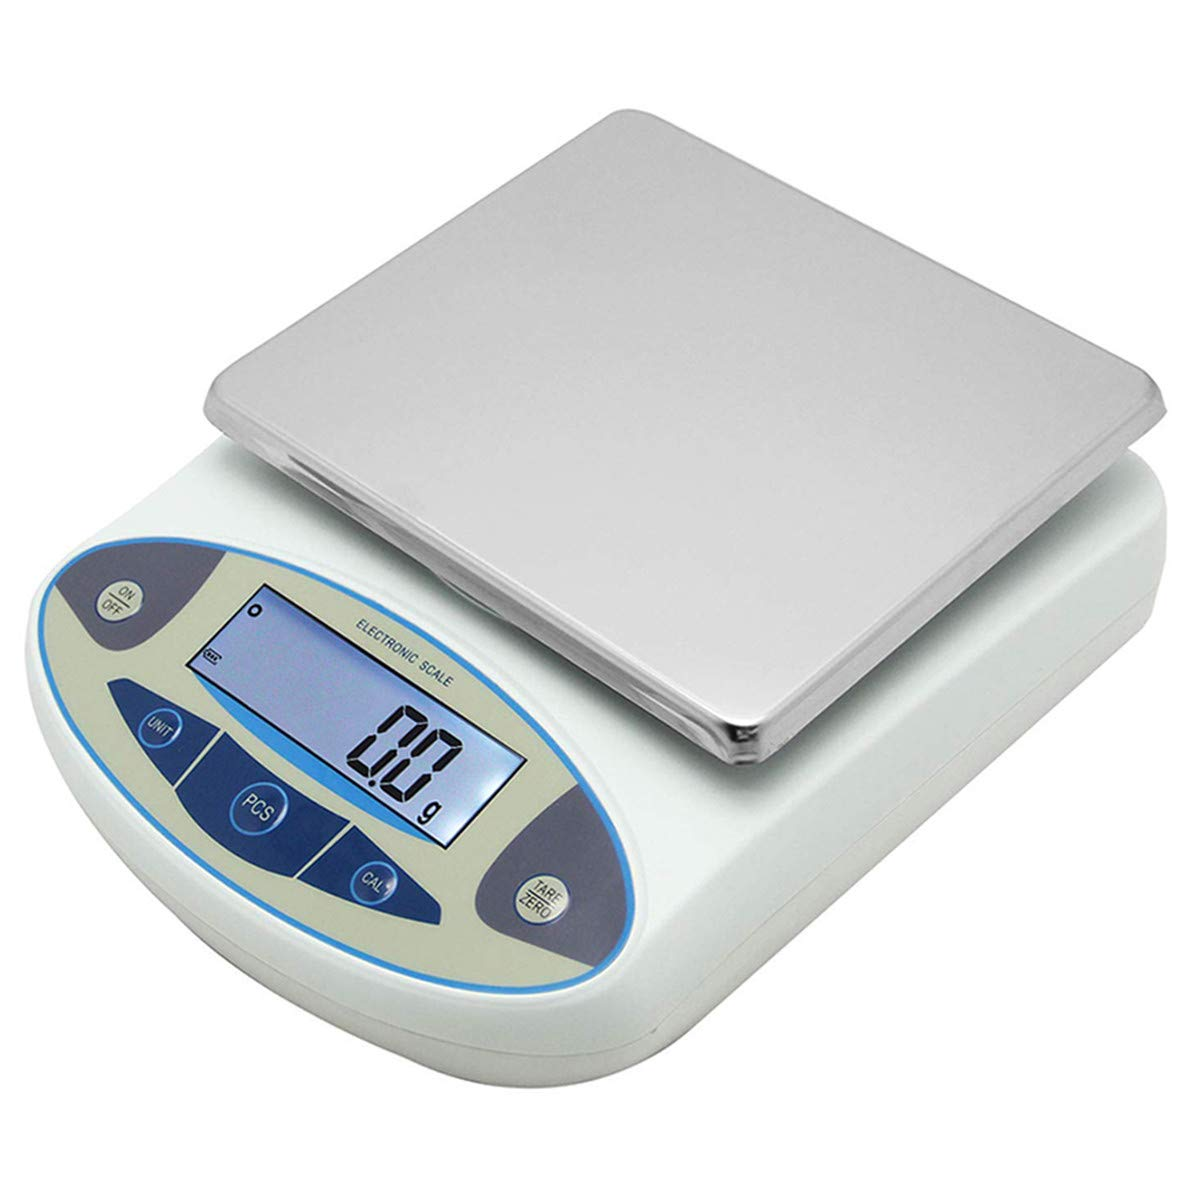 CGOLDENWALL Large Range Lab Digital Precision Analytical Electronic Balance Lab Scale Precision Jewelry Scales Kitchen Precision Weighing Scale 0.1g Calibrated Pan Size: 180 140mm (5kg, 0.1g) by CGOLDENWALL